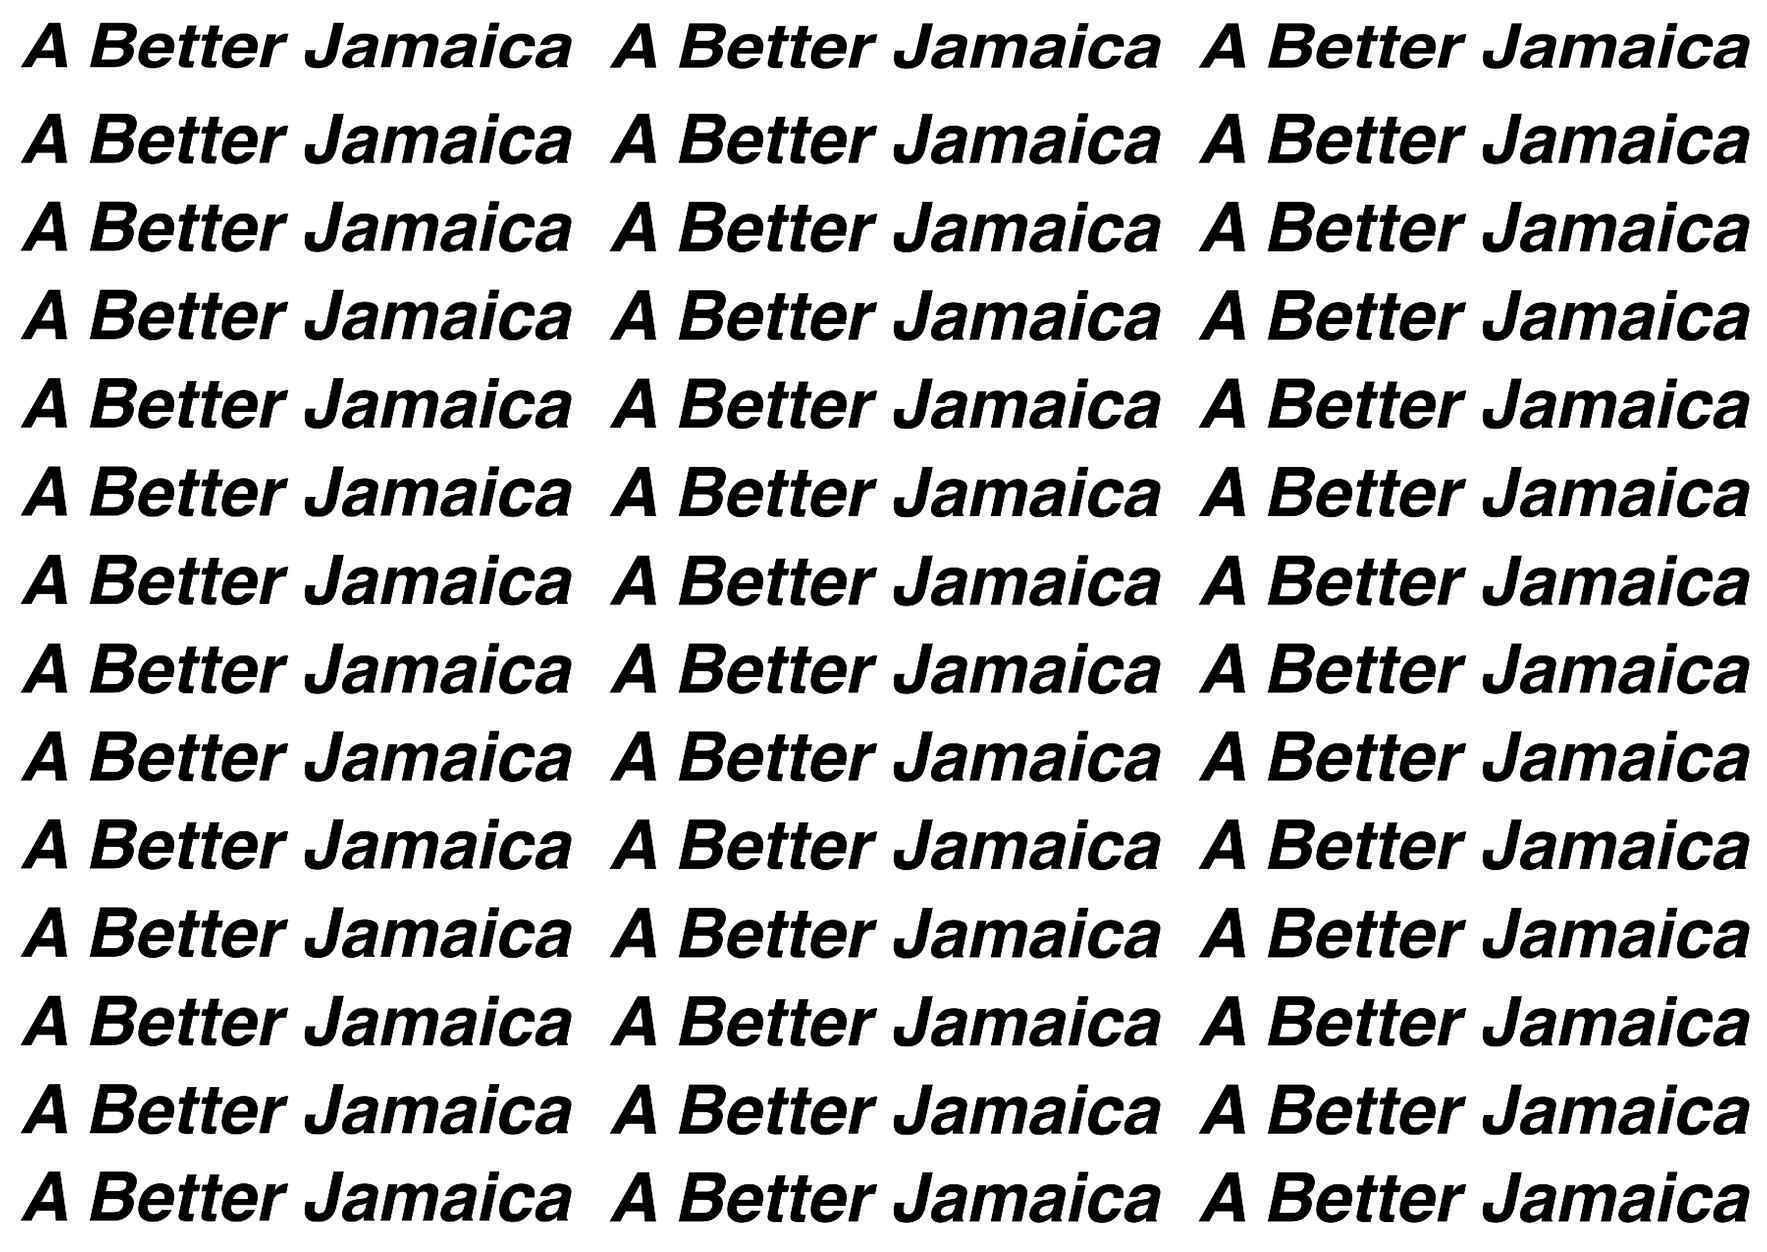 Make a donation to help build A Better Jamaica! image